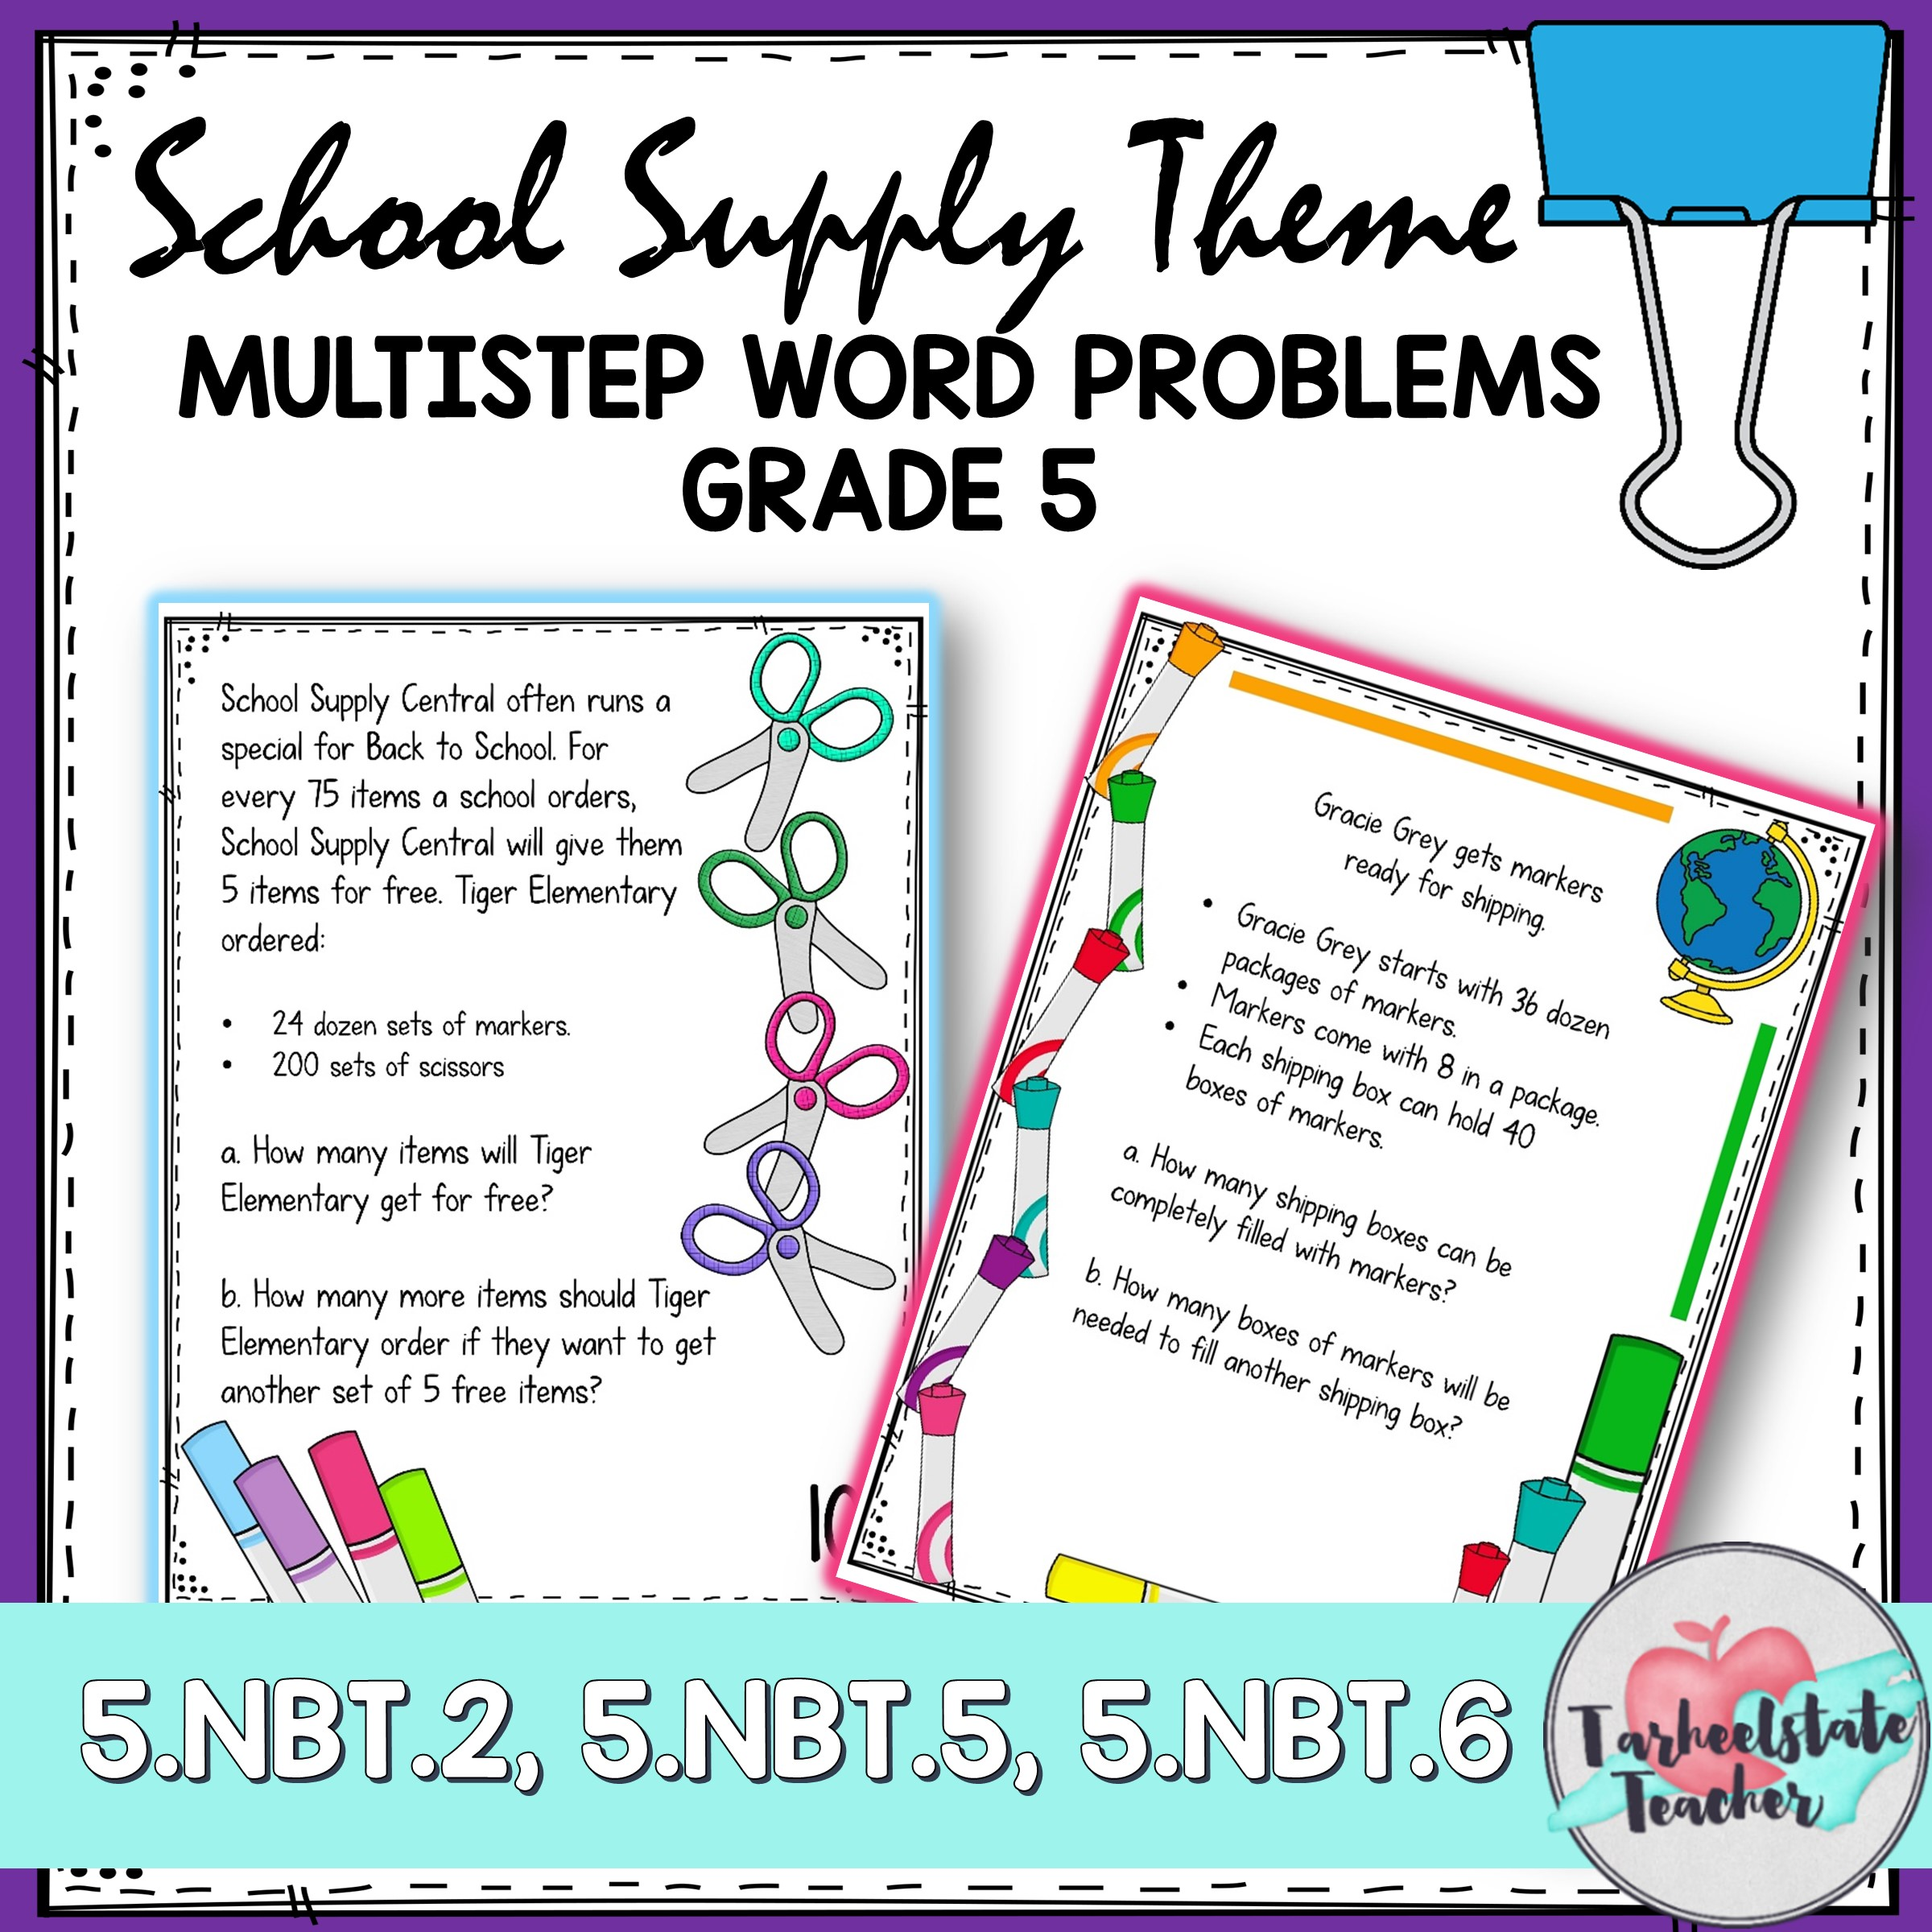 multistep word problems school supply theme